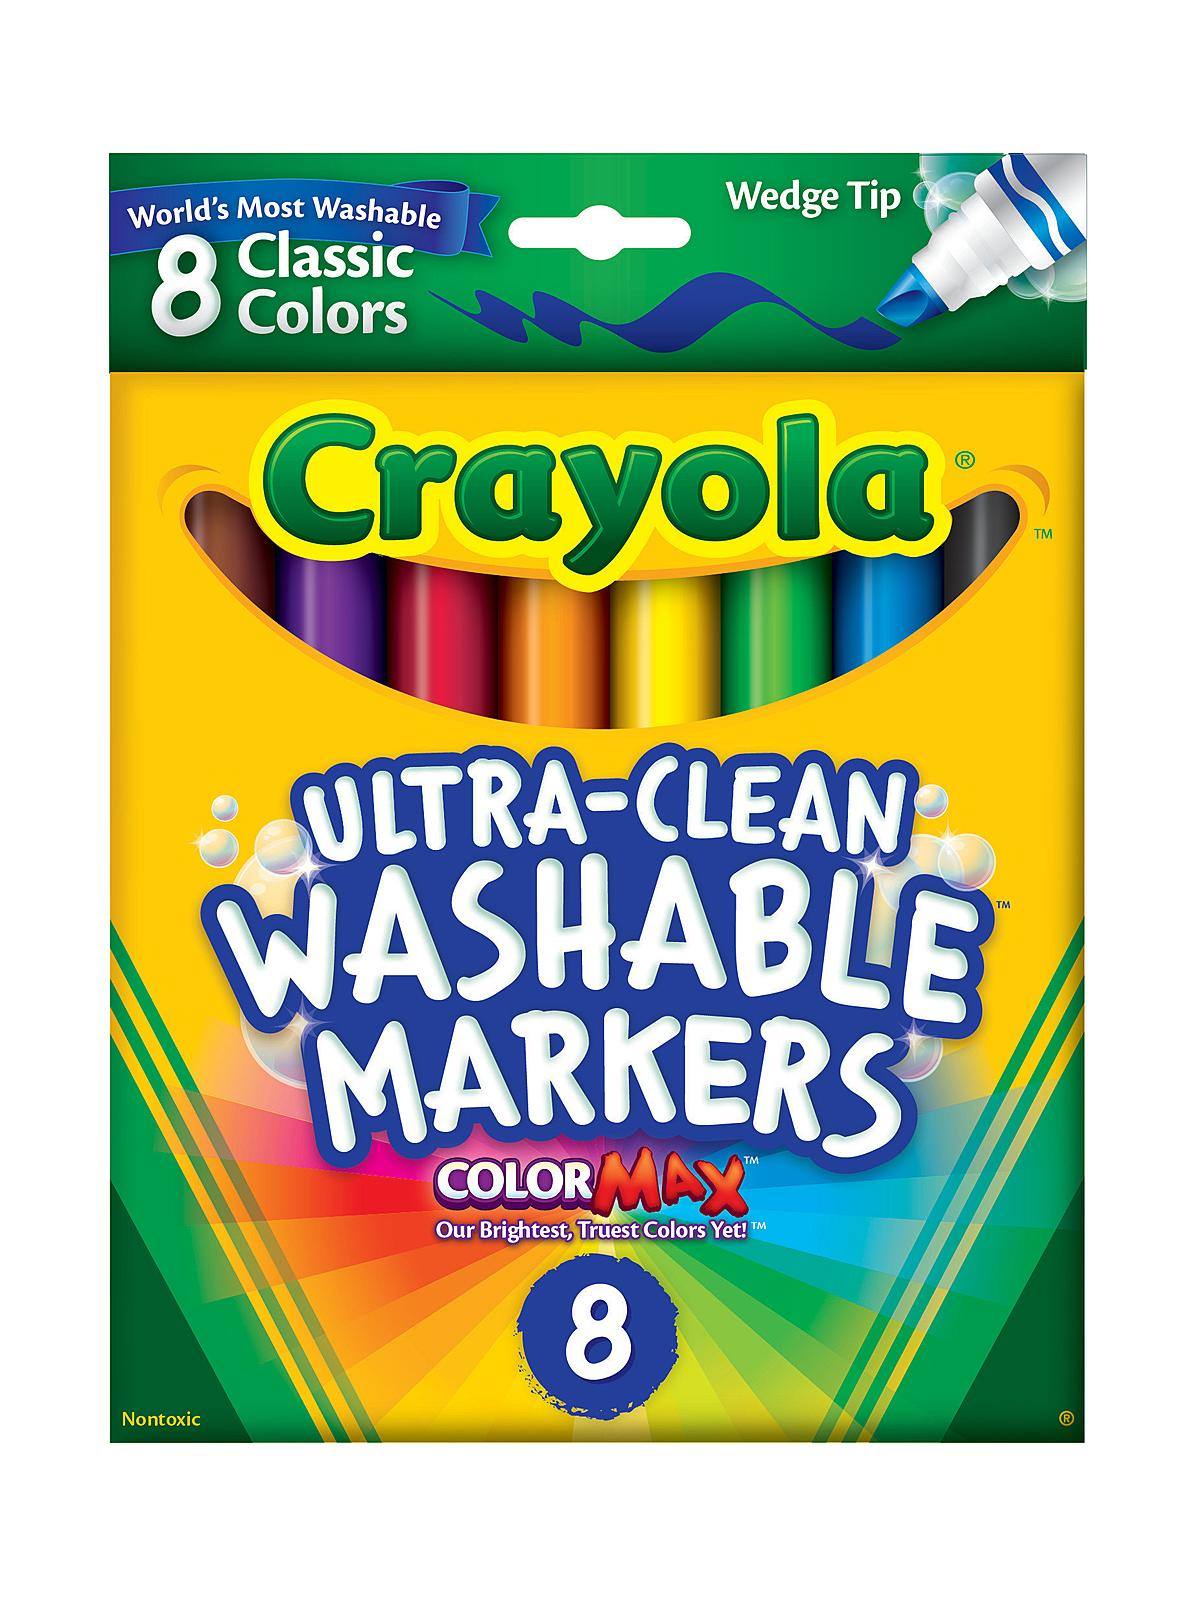 Classic Color Ultra-Clean Washable Markers